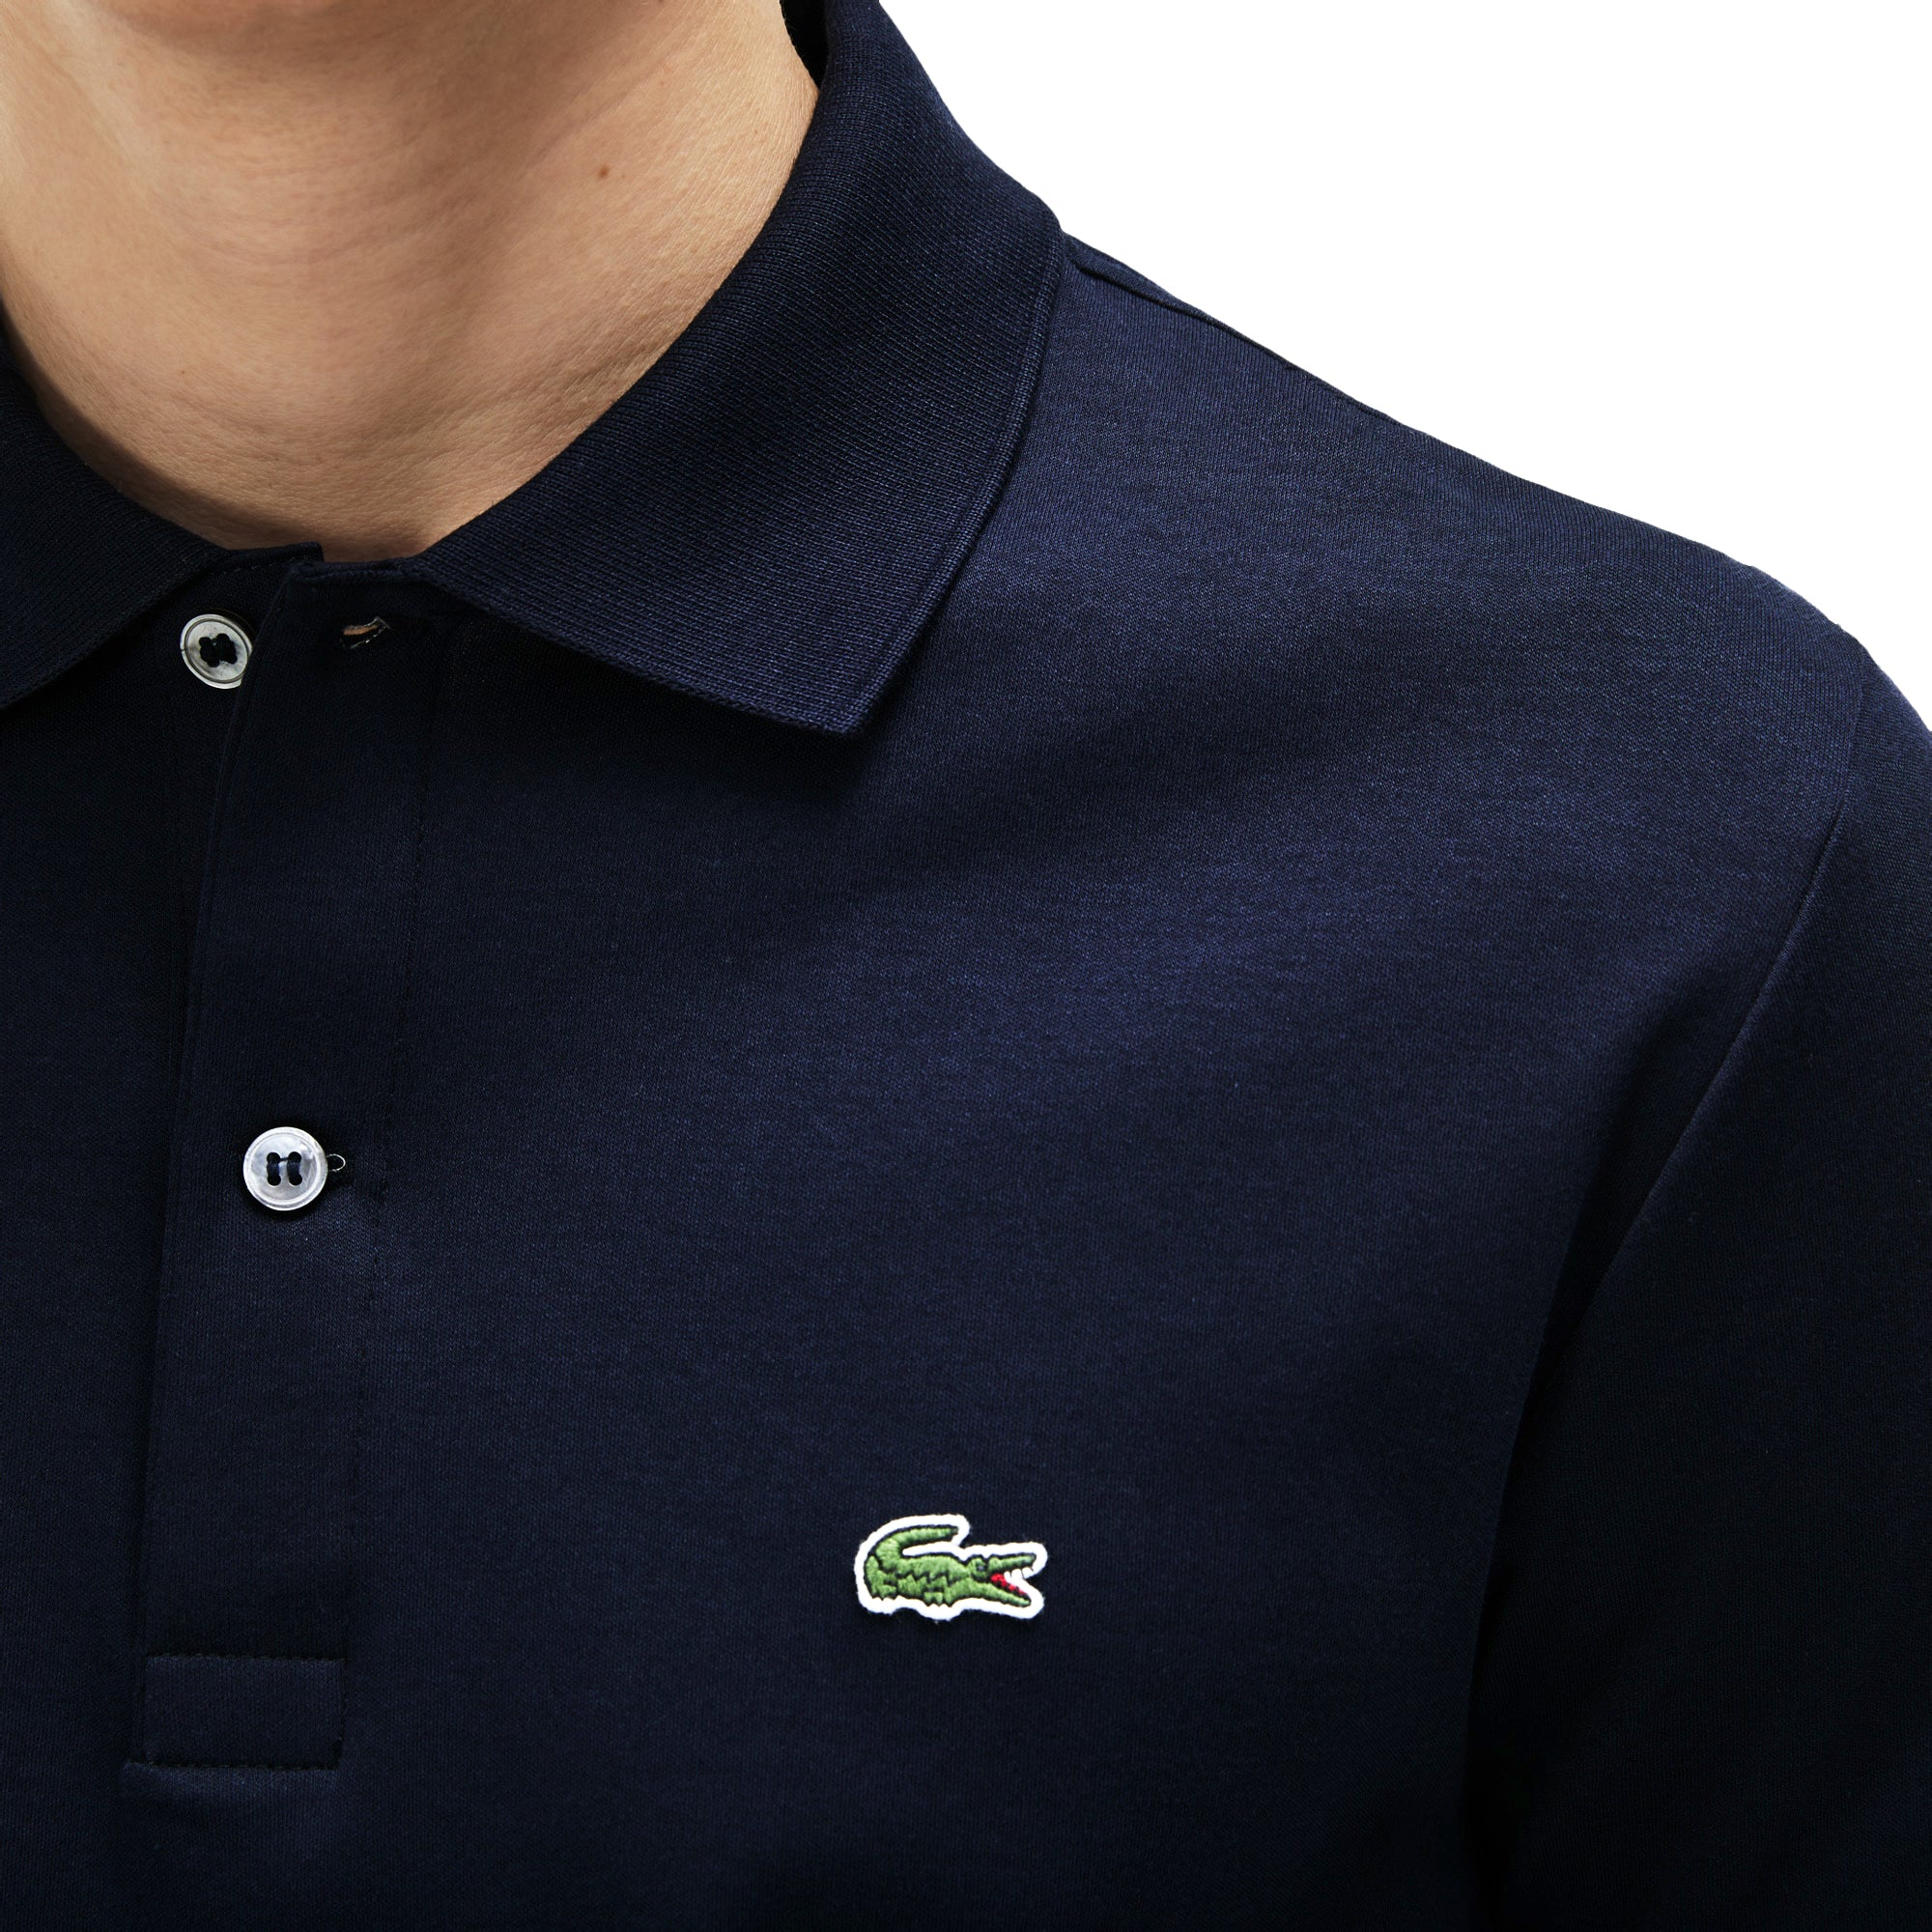 96517375ed85 Lacoste Stretch Jersey DH2050 Polo - Navy – Arena Menswear